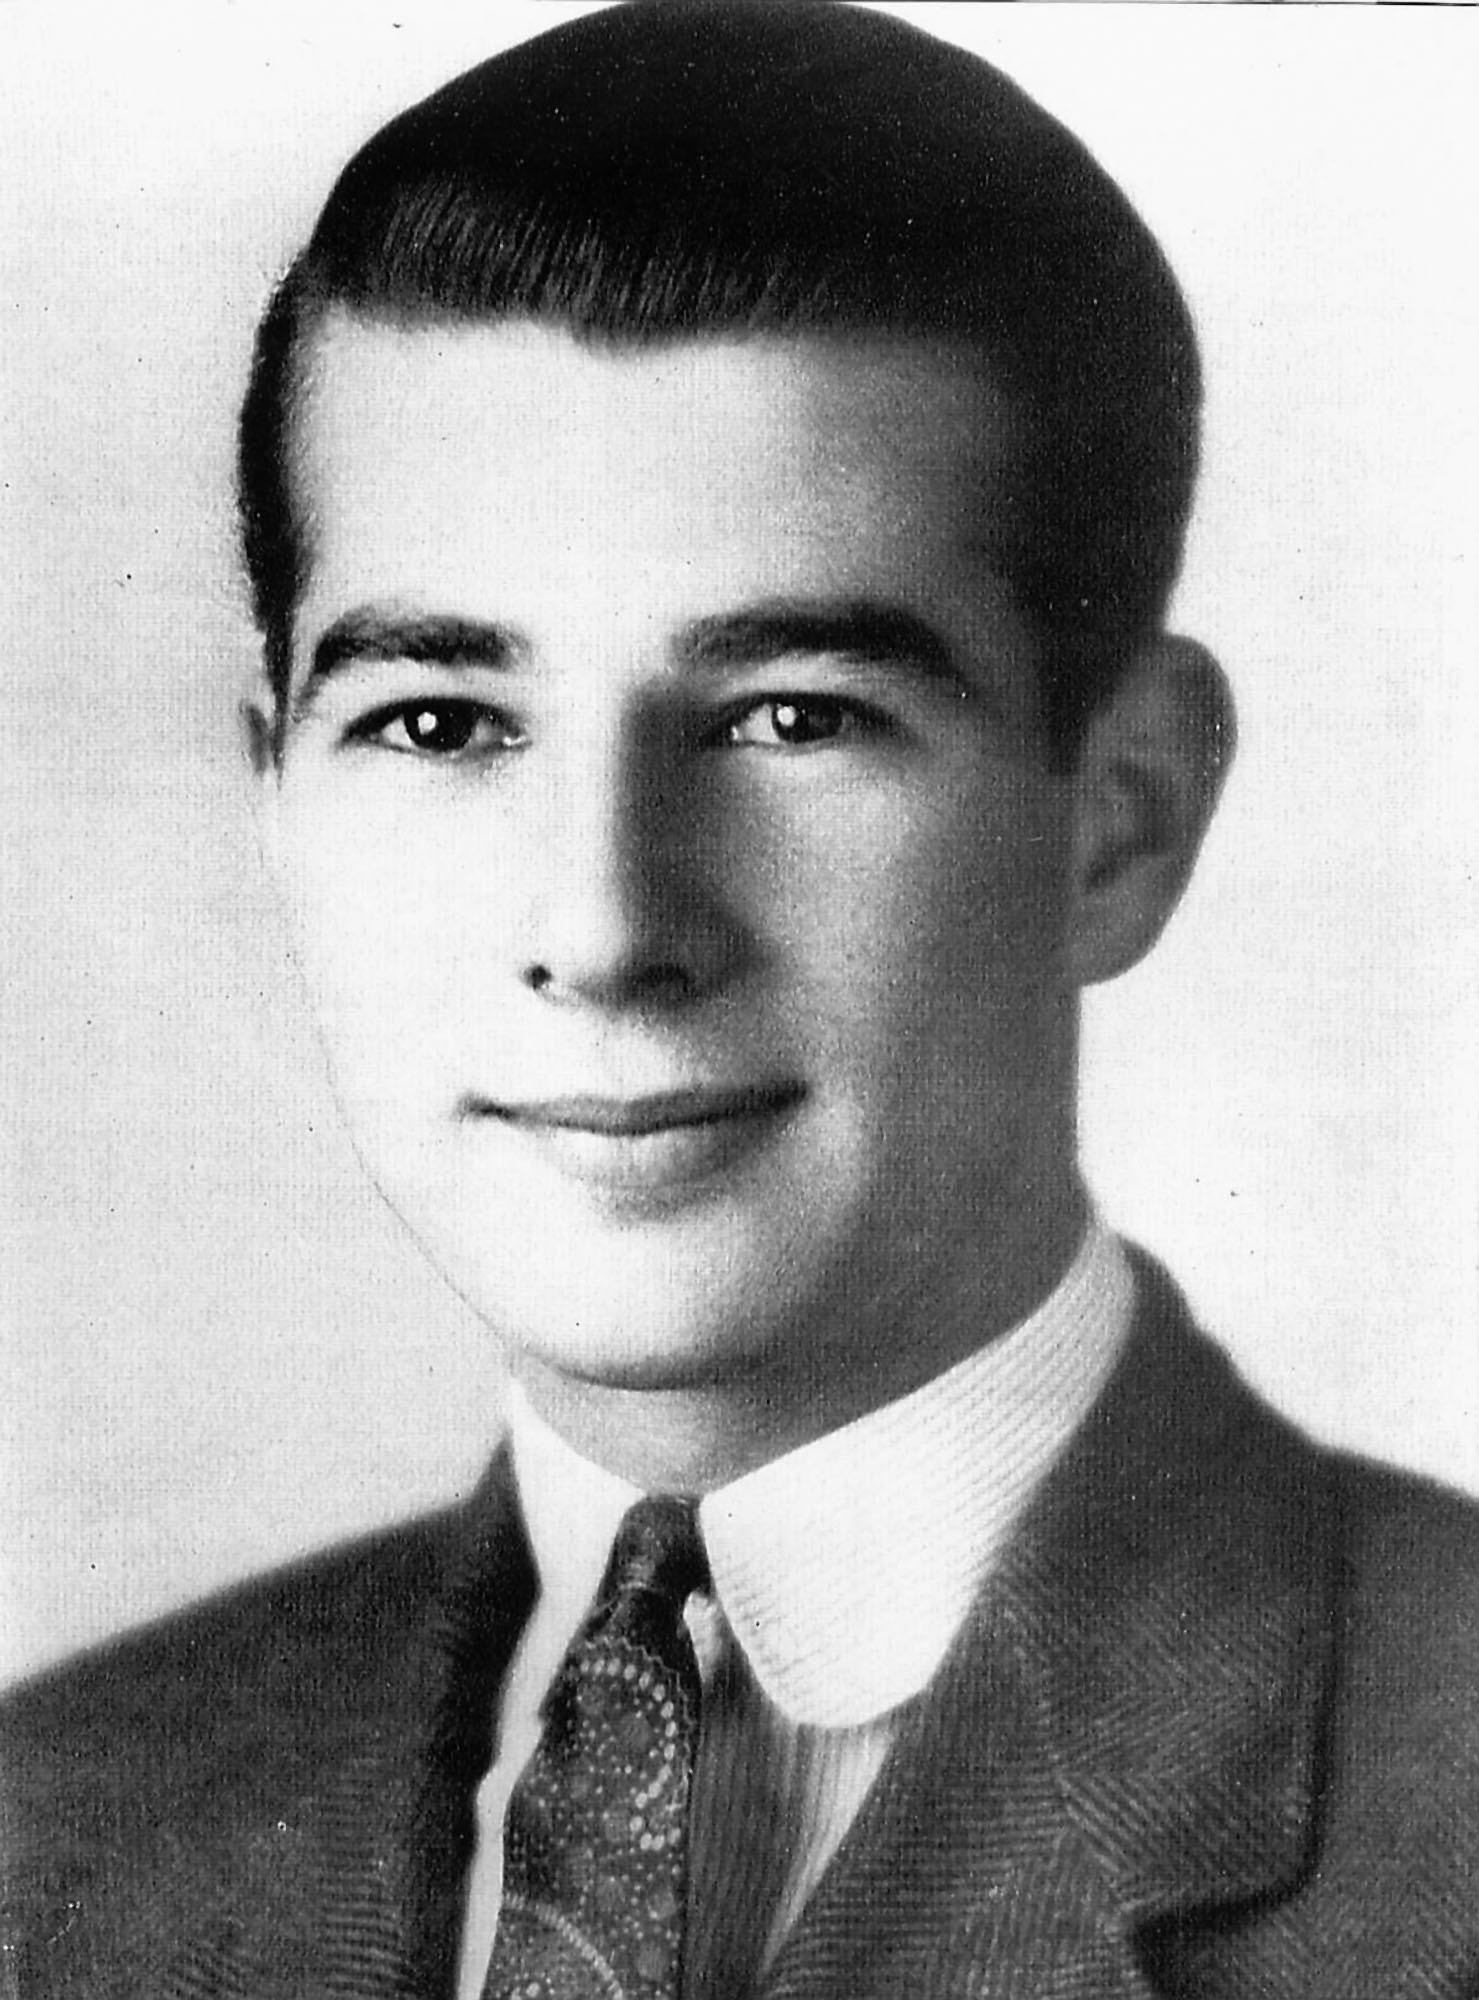 Paul Ignatius as Student Body President at Hoover High School, 1938 and as a Naval officer during World War II.